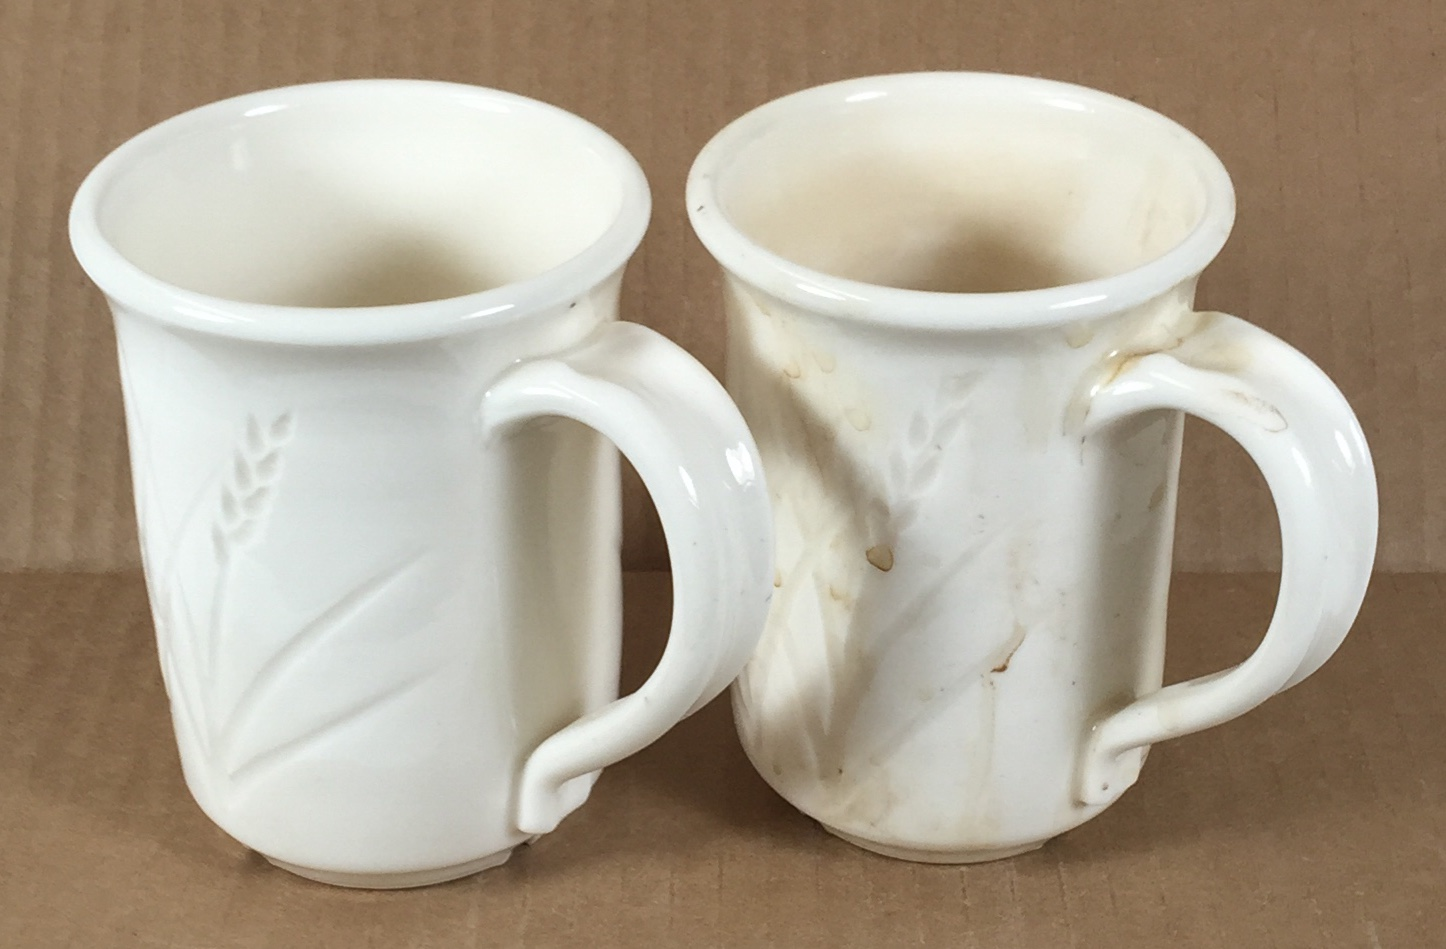 A problem with super-white mugs